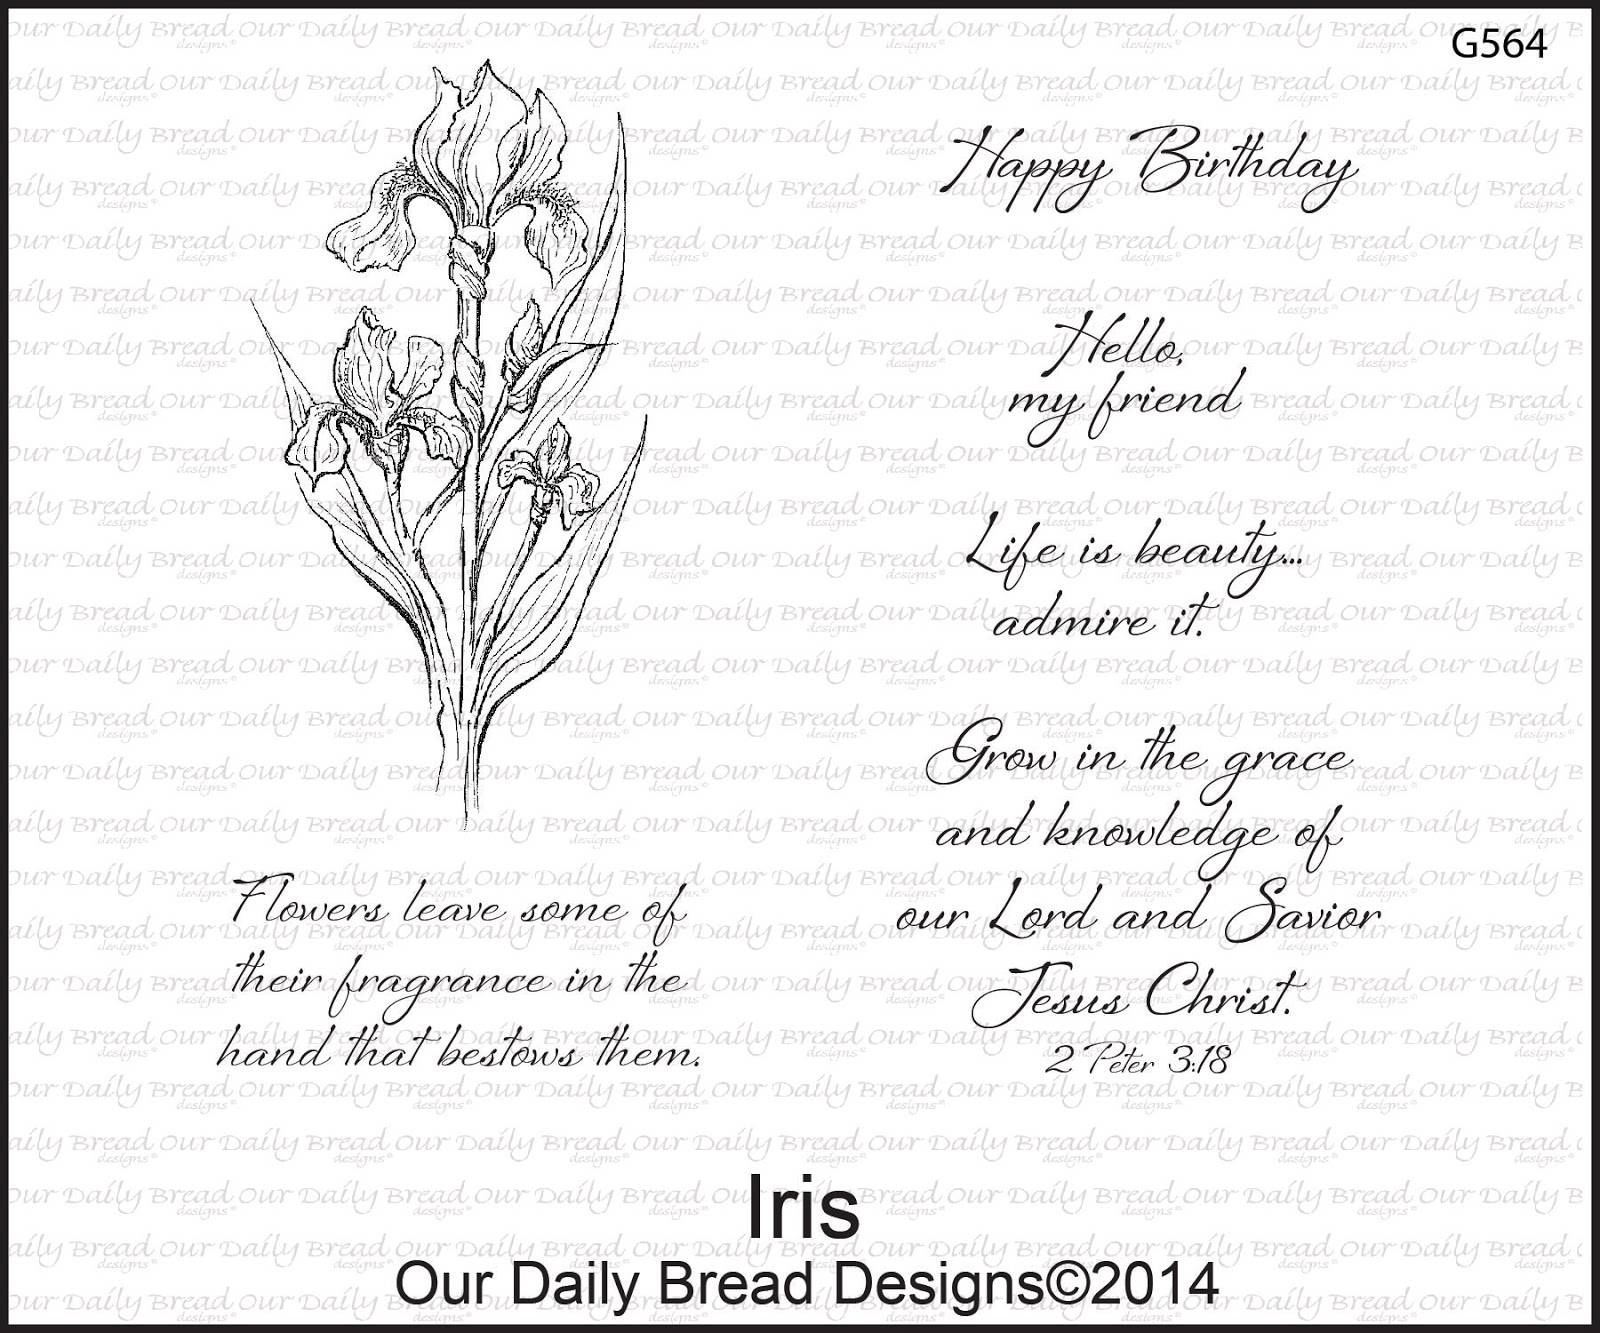 Stamps - Our Daily Bread Designs Iris